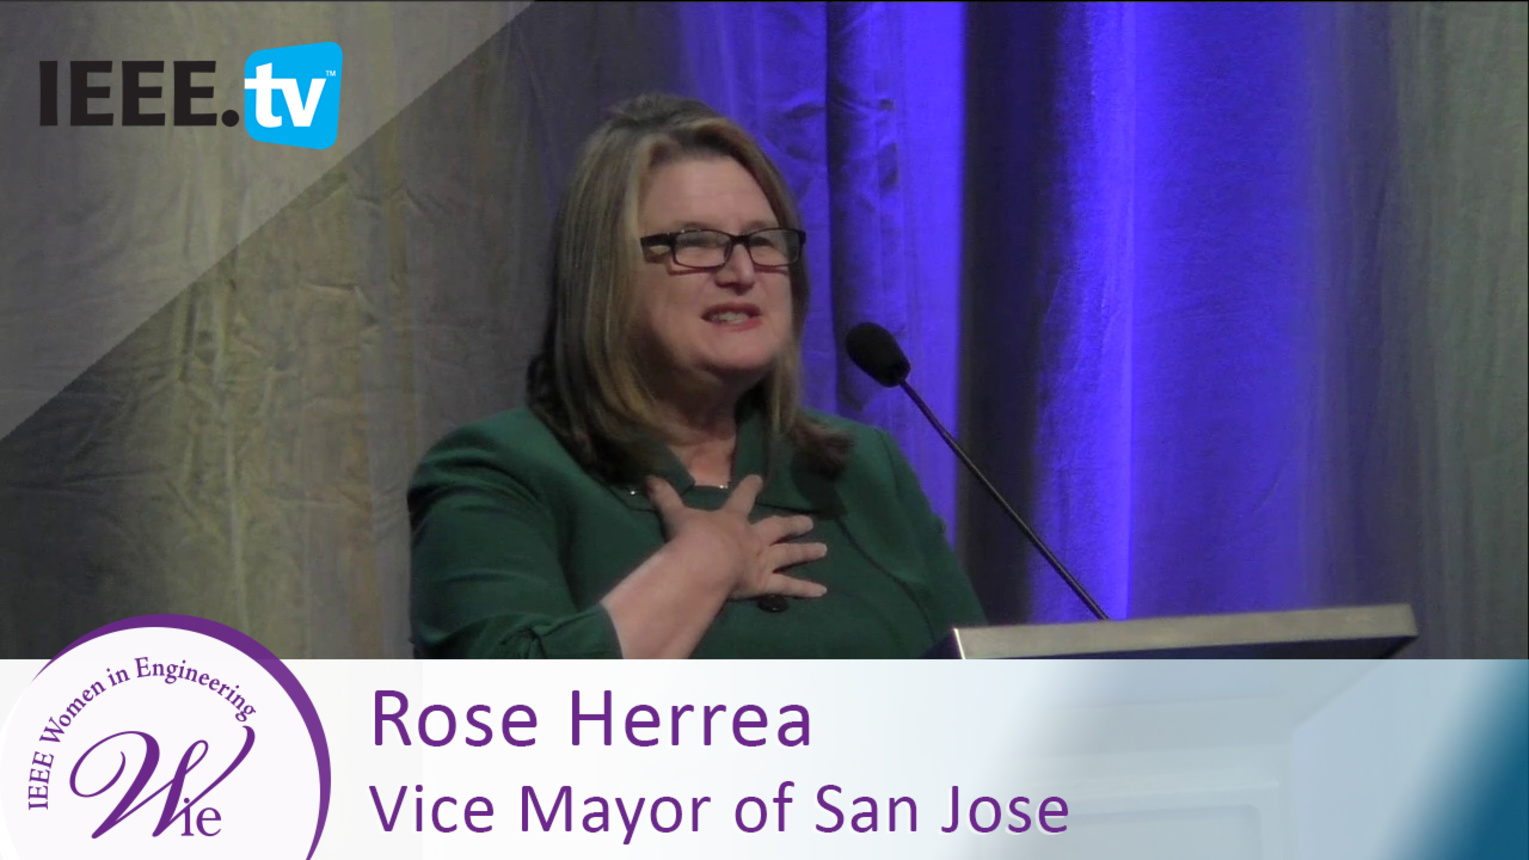 Vice Mayor of San Jose Rose Herrera supports WIE ILC - 2016 Women in Engineering Conference